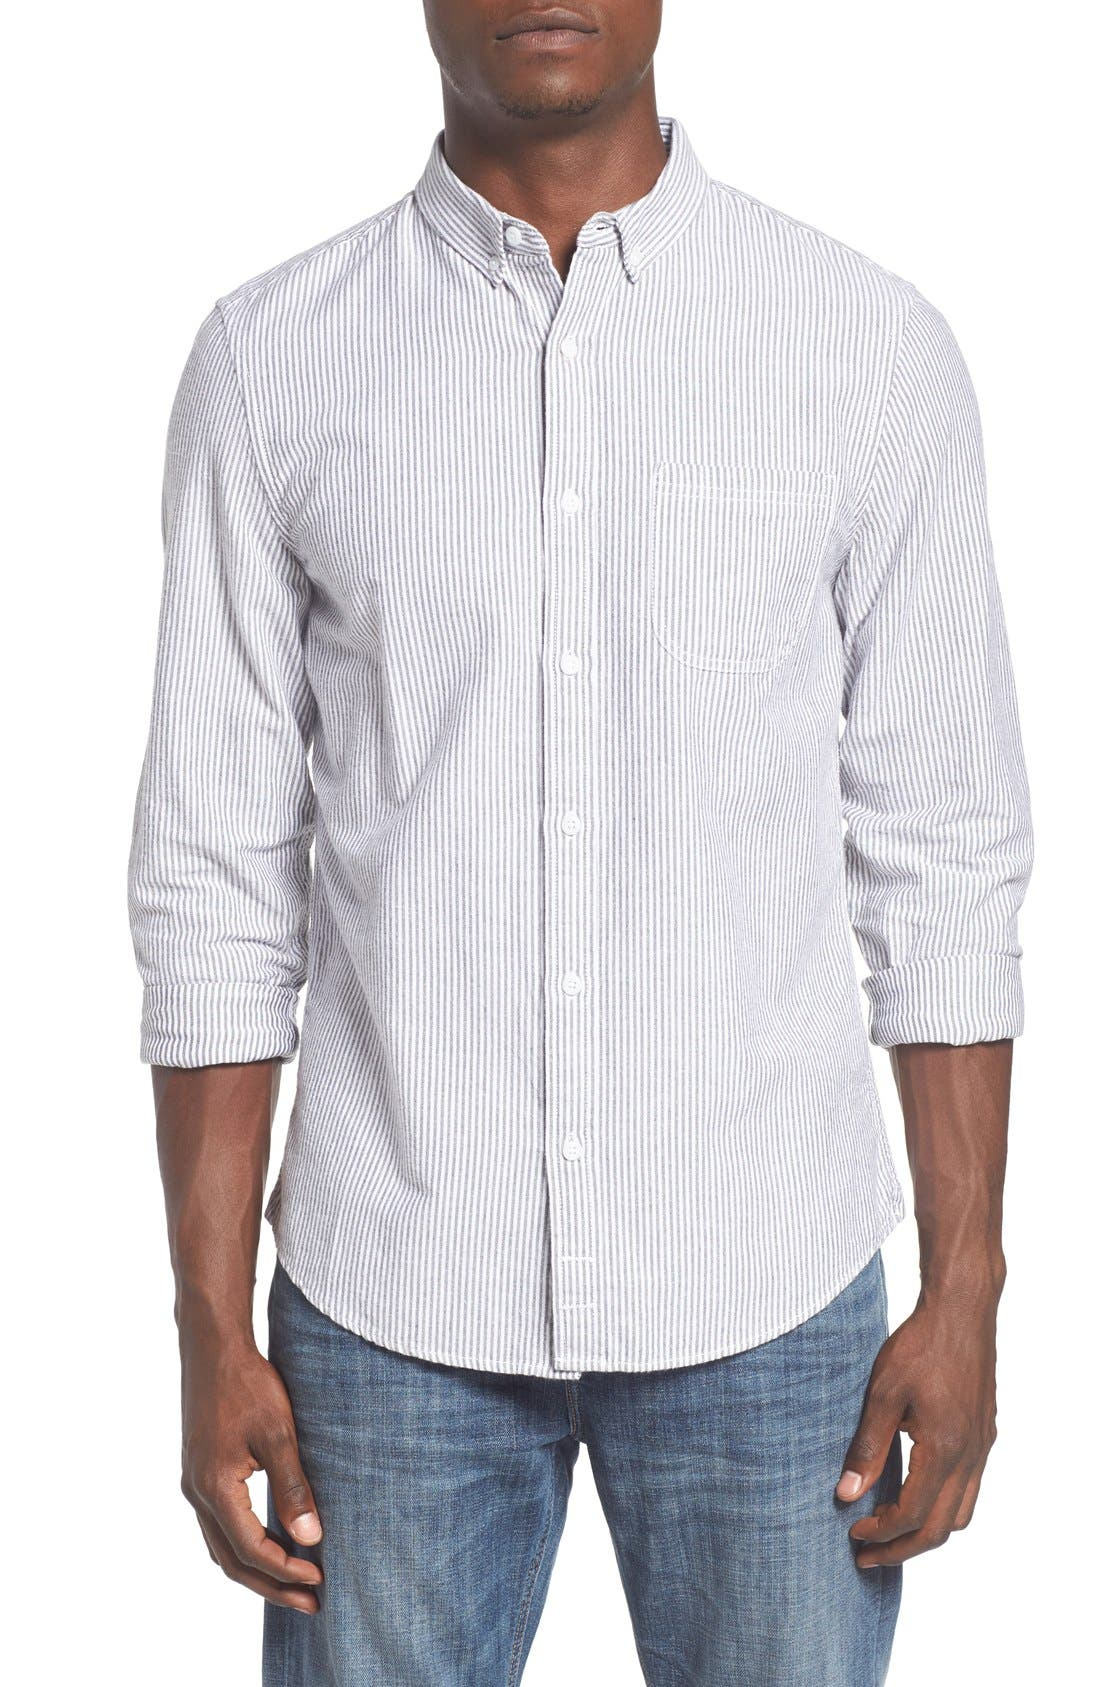 Alternate Image 1 Selected - 1901 'Baker' Slim Fit Oxford Shirt